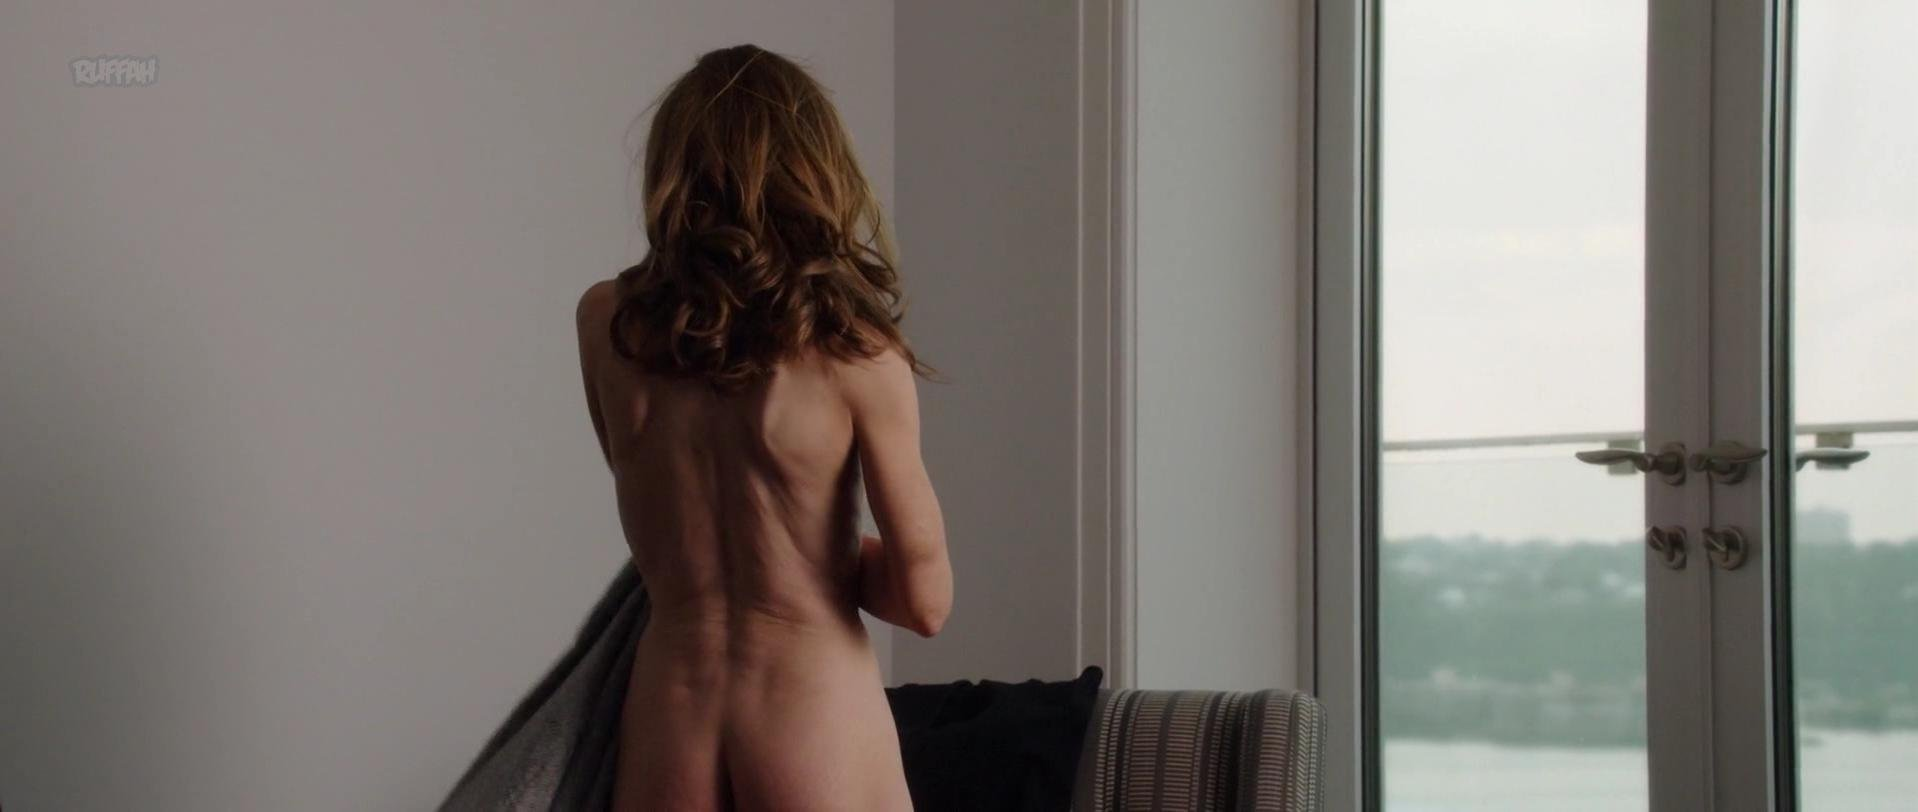 Holly Hunter nude - Breakable You (2018)